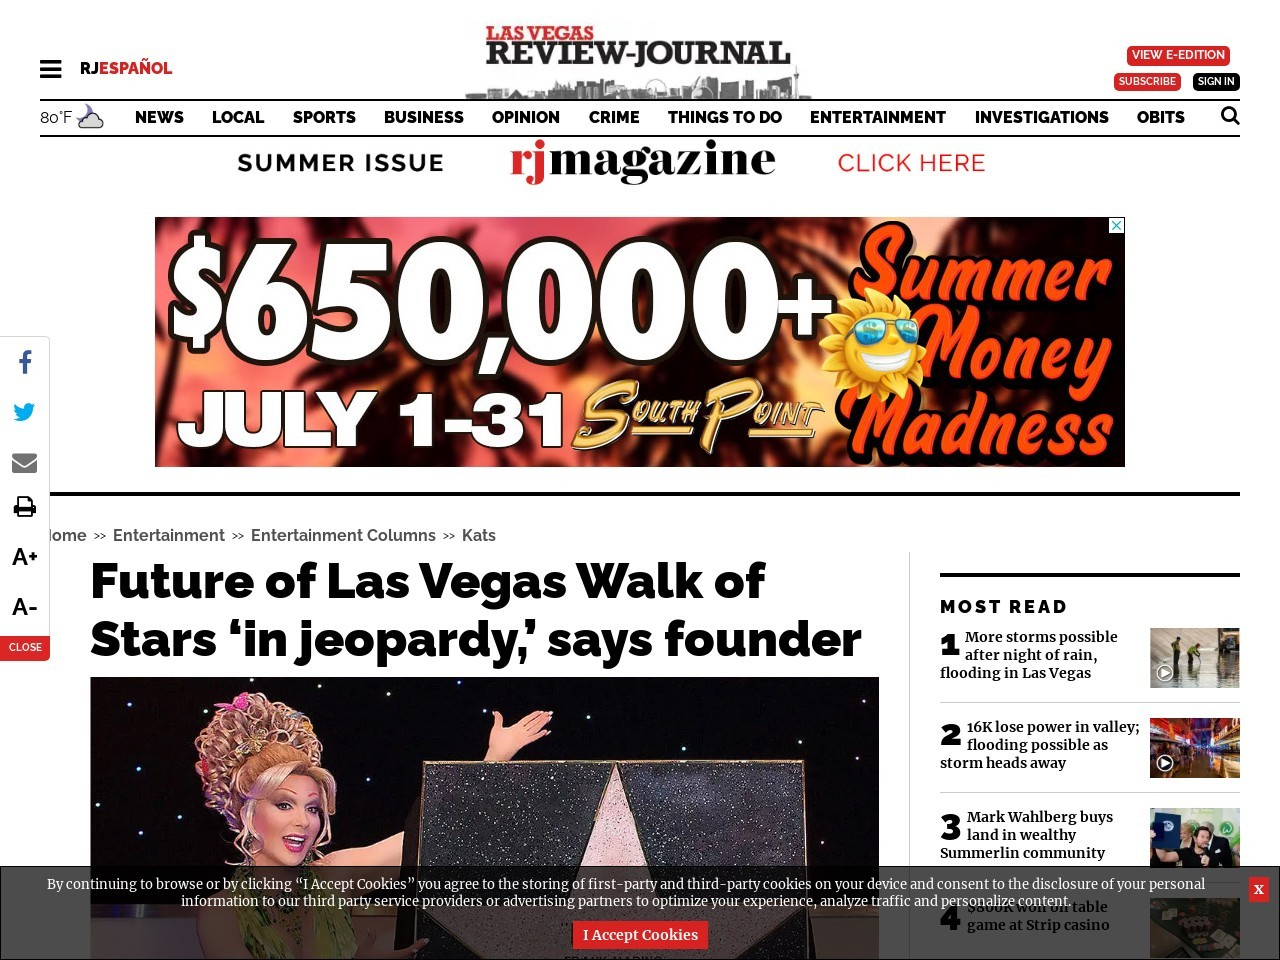 Future of Las Vegas Walk of Stars 'in jeopardy,' says founder